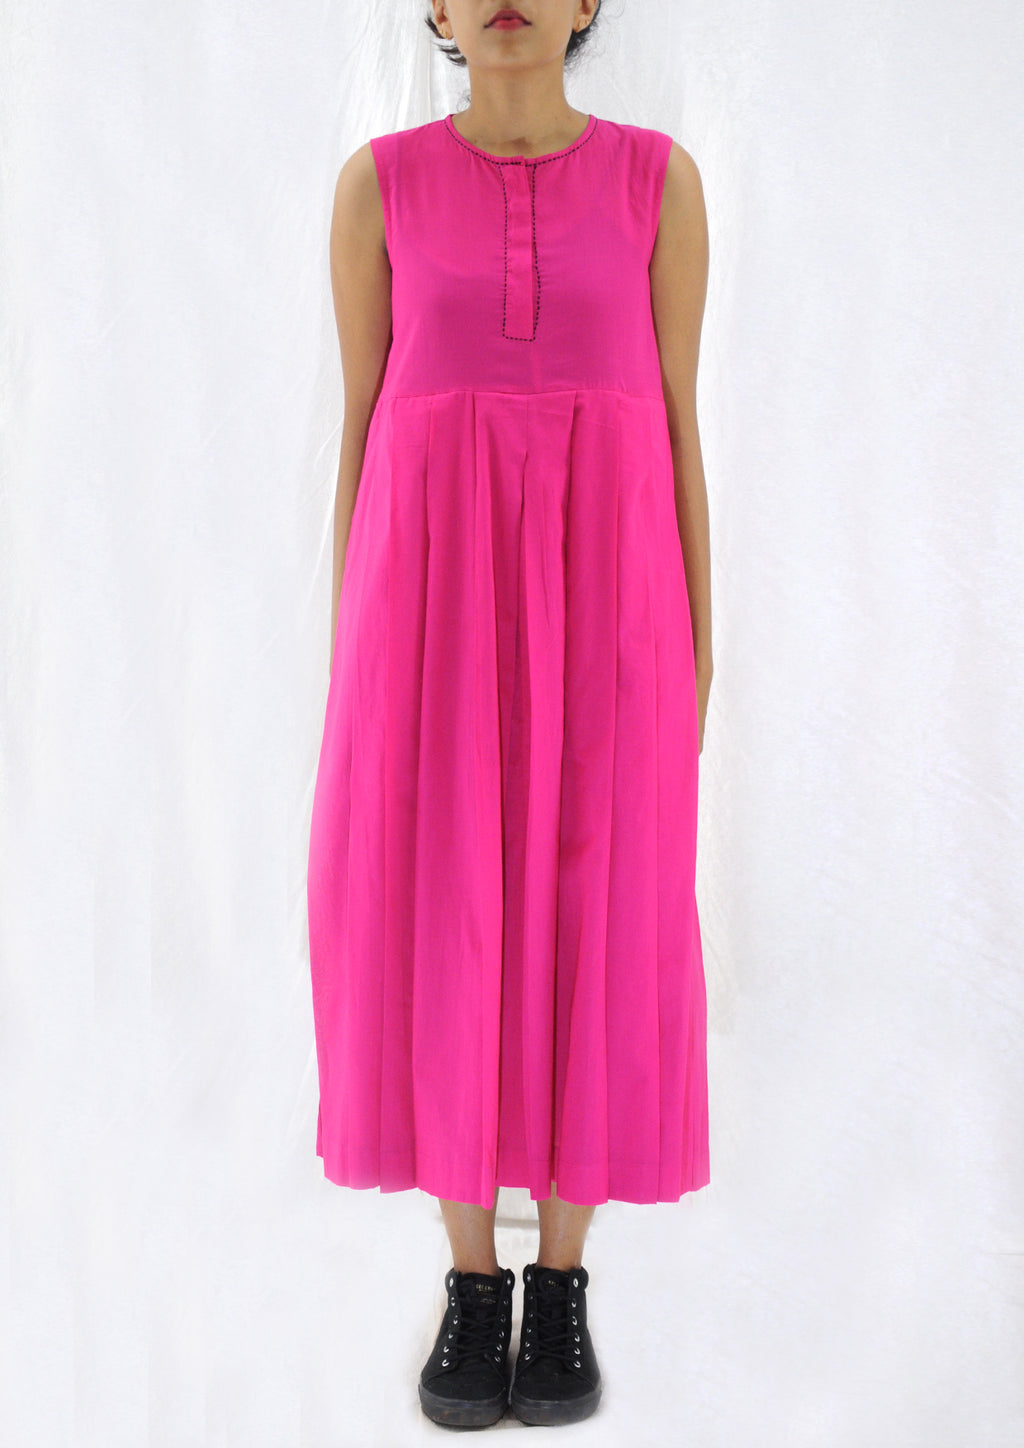 Navya-Pink Organic Cotton Dress - Upasana Design Studio